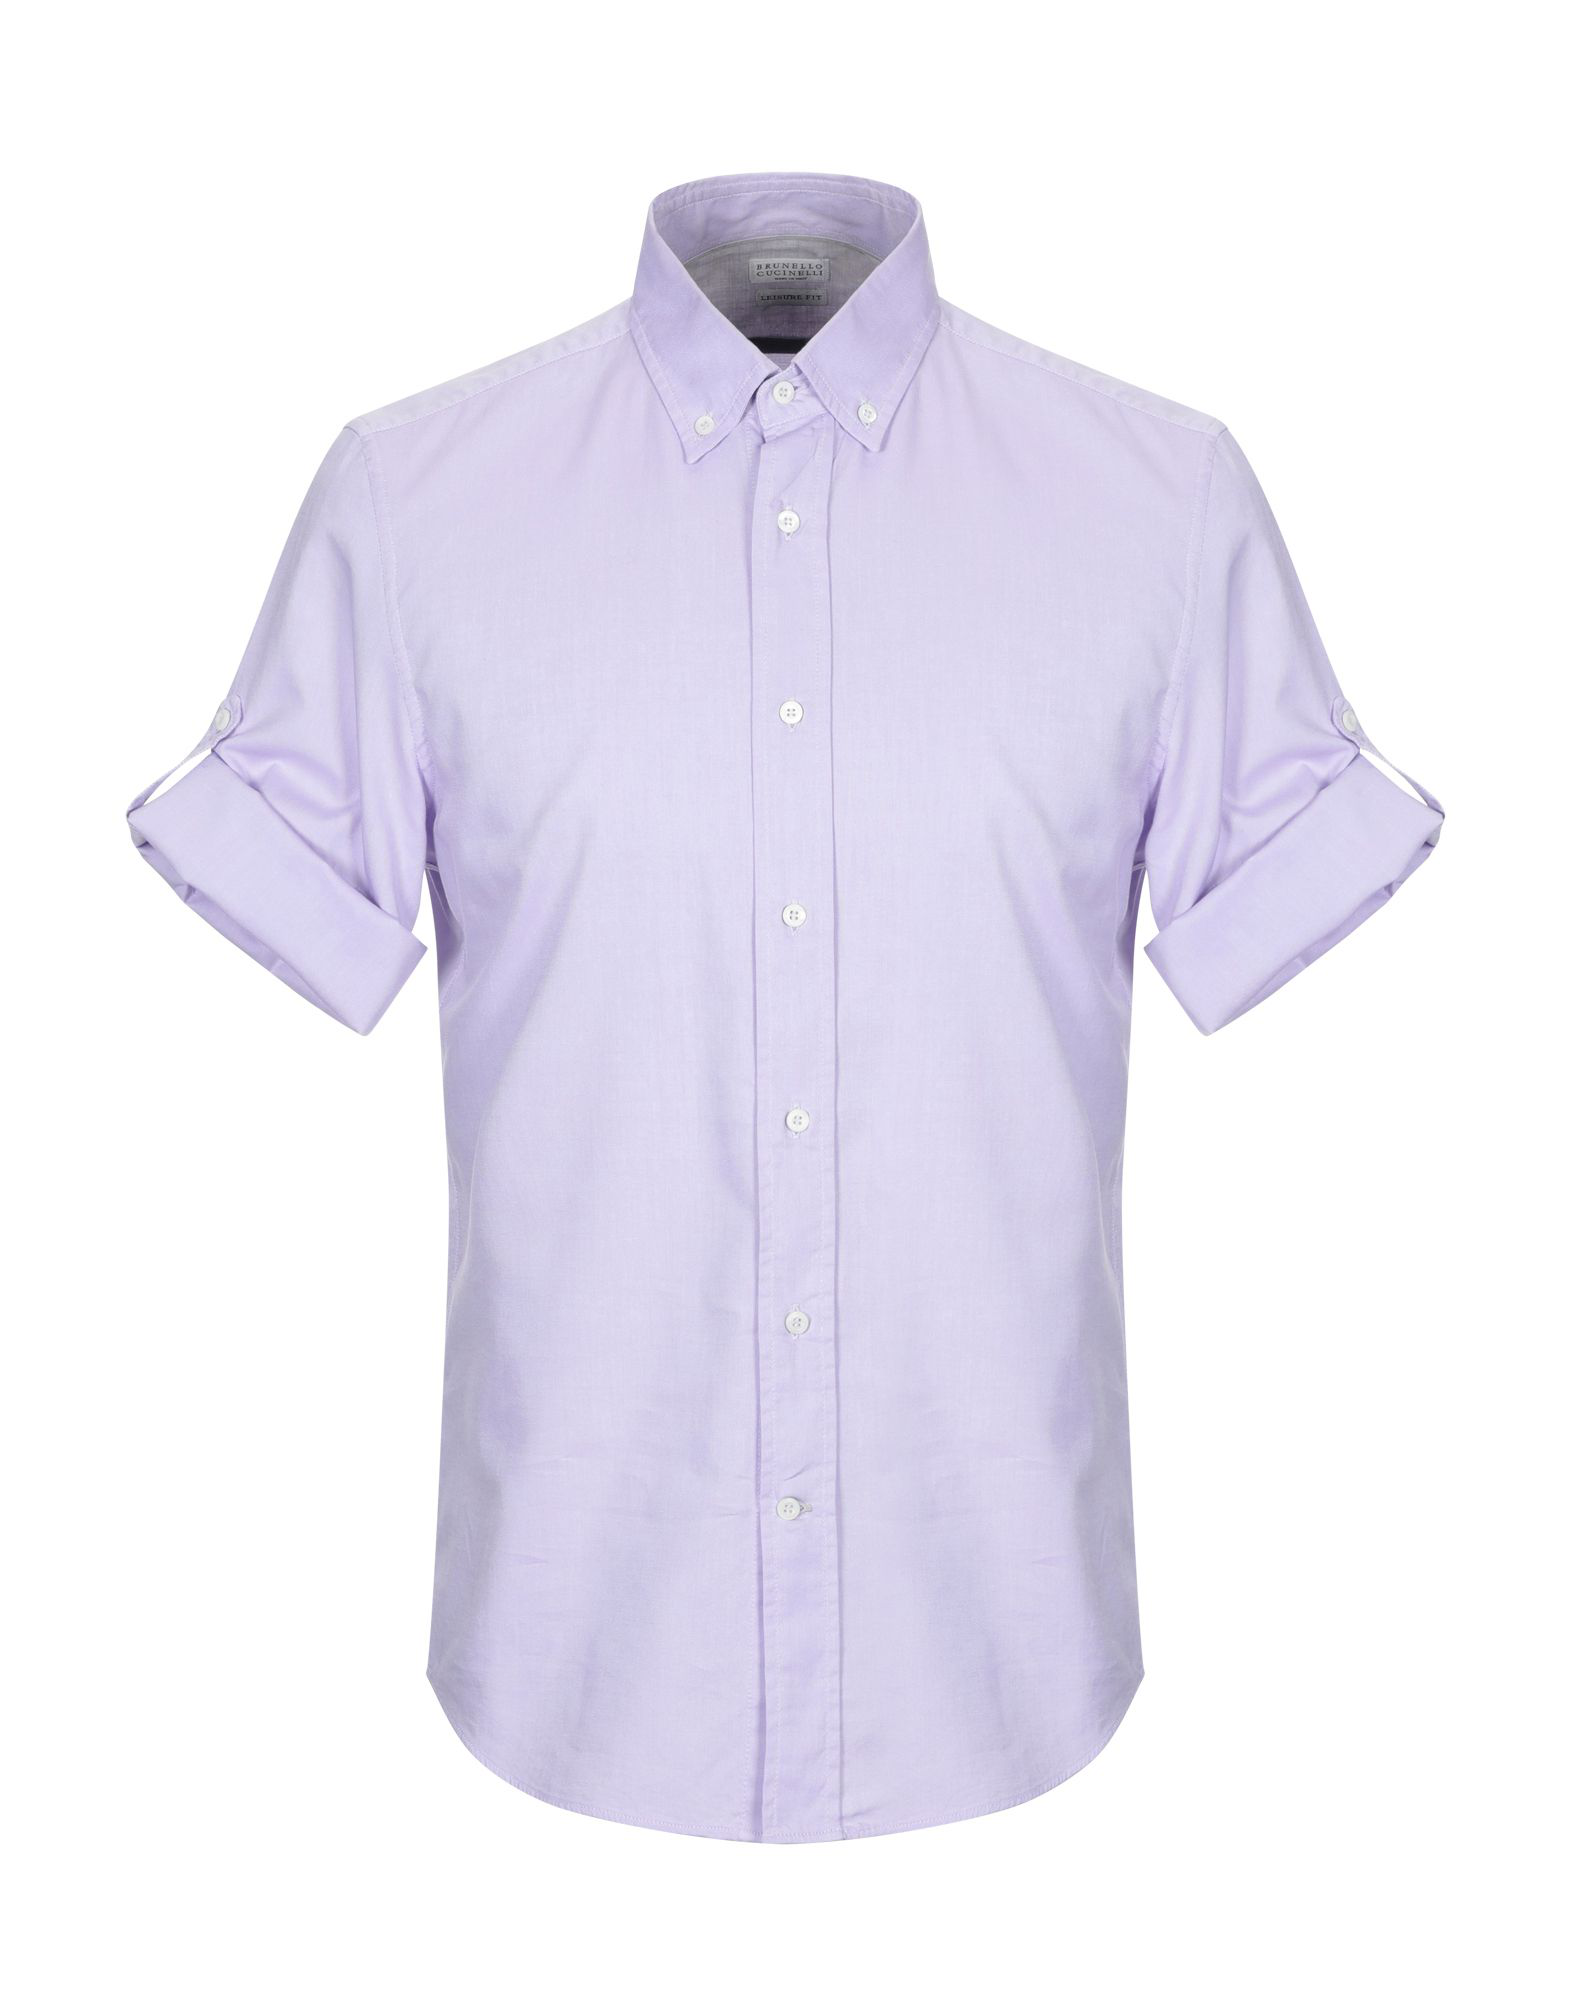 9f8678940189 Brunello Cucinelli Solid Color Shirt In Lilac | ModeSens